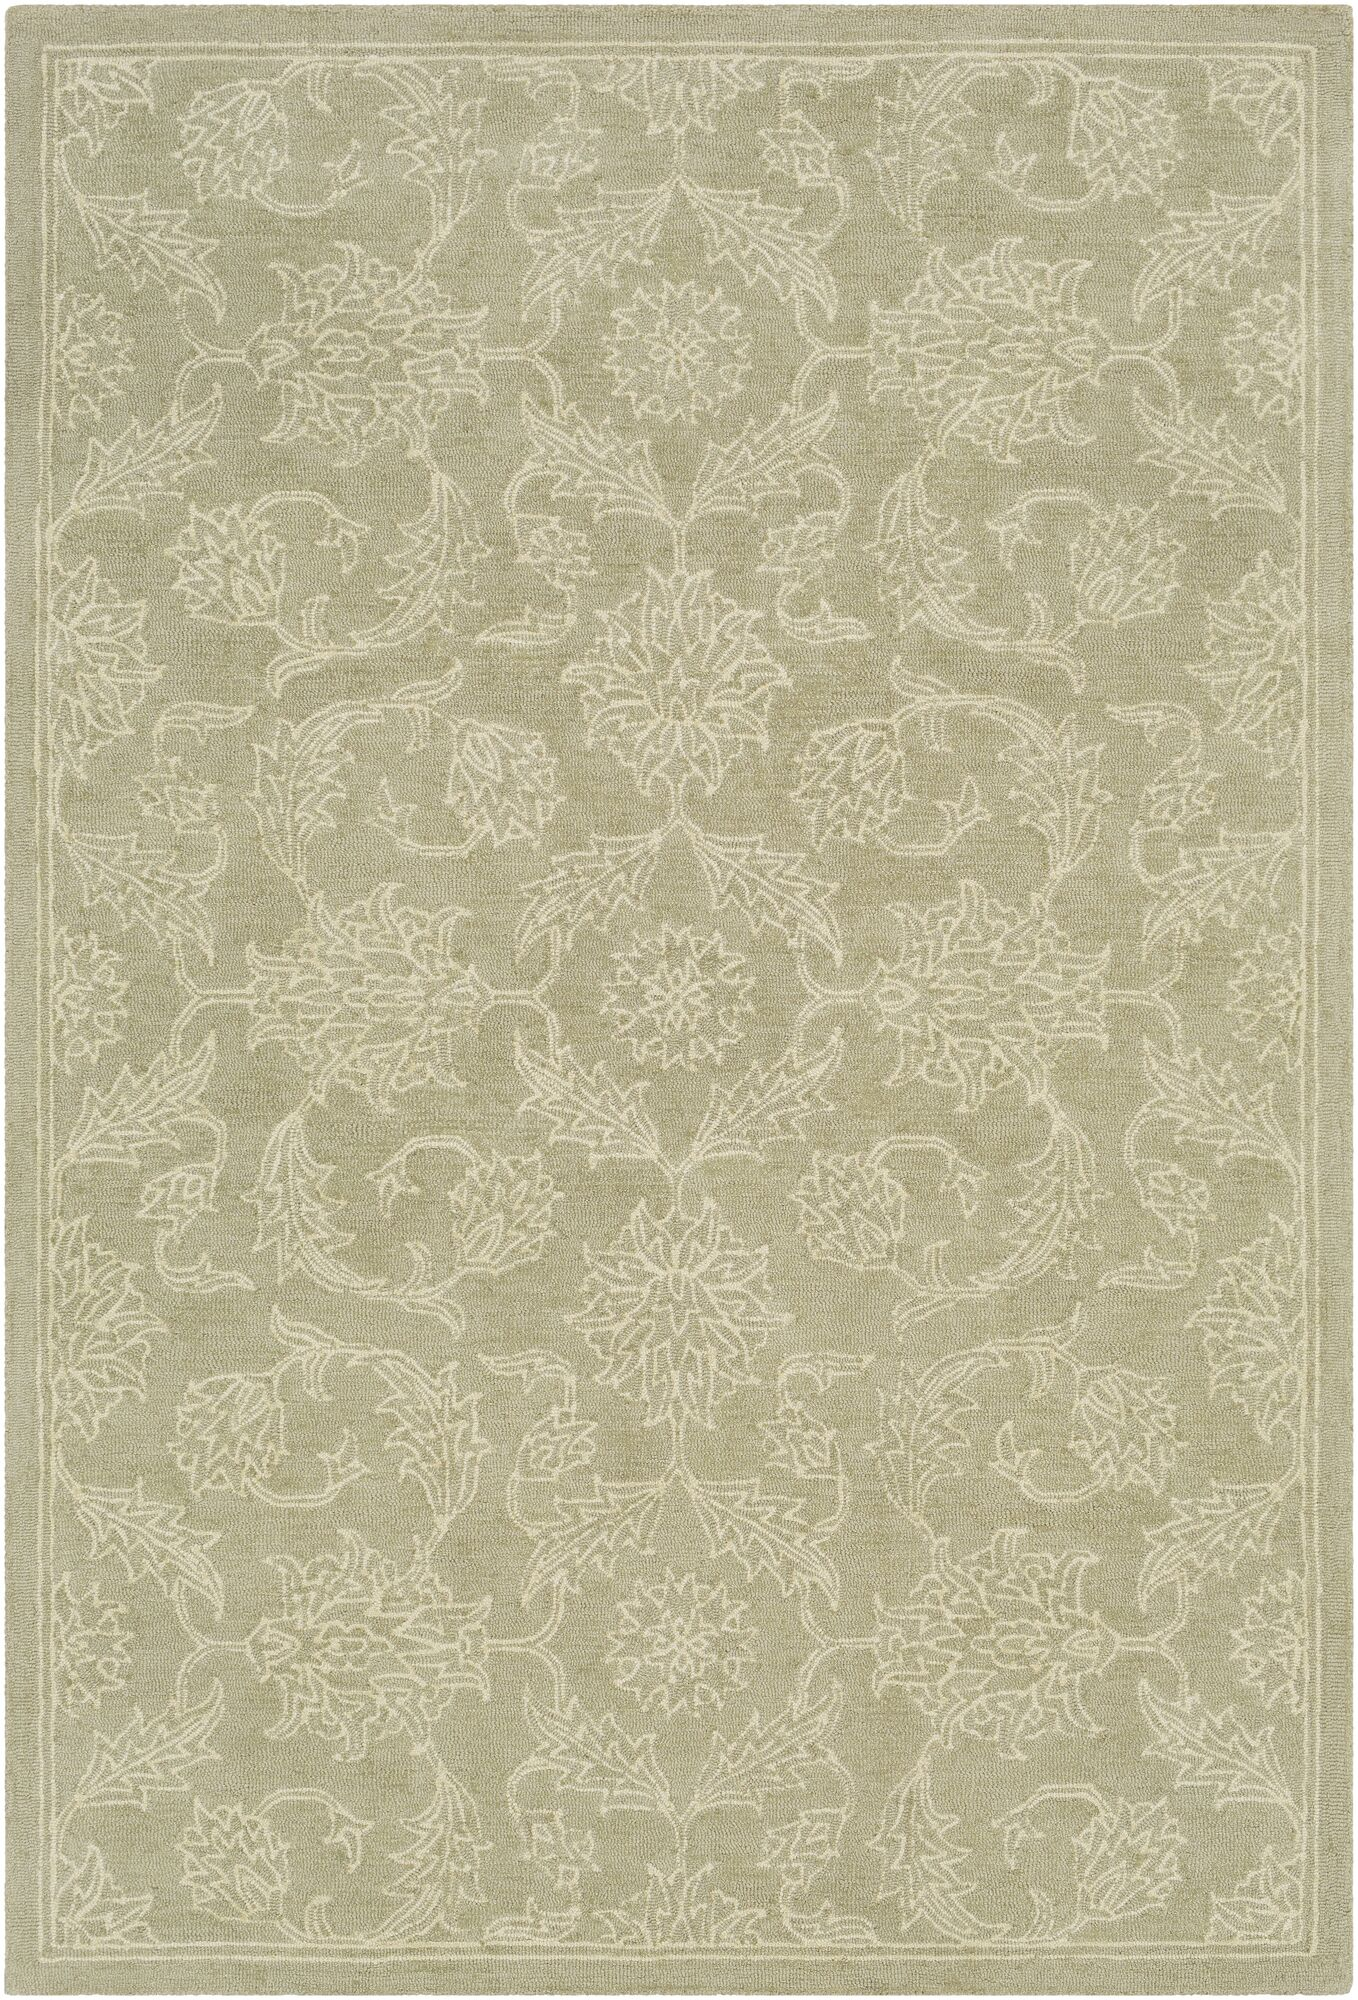 Argent Floral Hand Hooked Wool Sage Area Rug Rug Size: Rectangle 8' x 10'